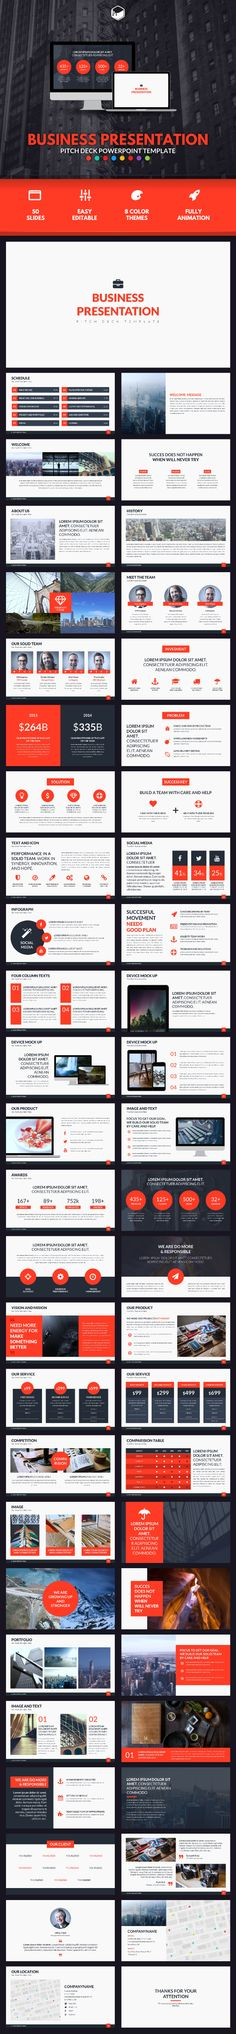 Business Presentation - PitchDeck PowerPoint Template #design #slides Download: http://graphicriver.net/item/business-presentation-pitchdeck-powerpoint-template/14376069?ref=ksioks